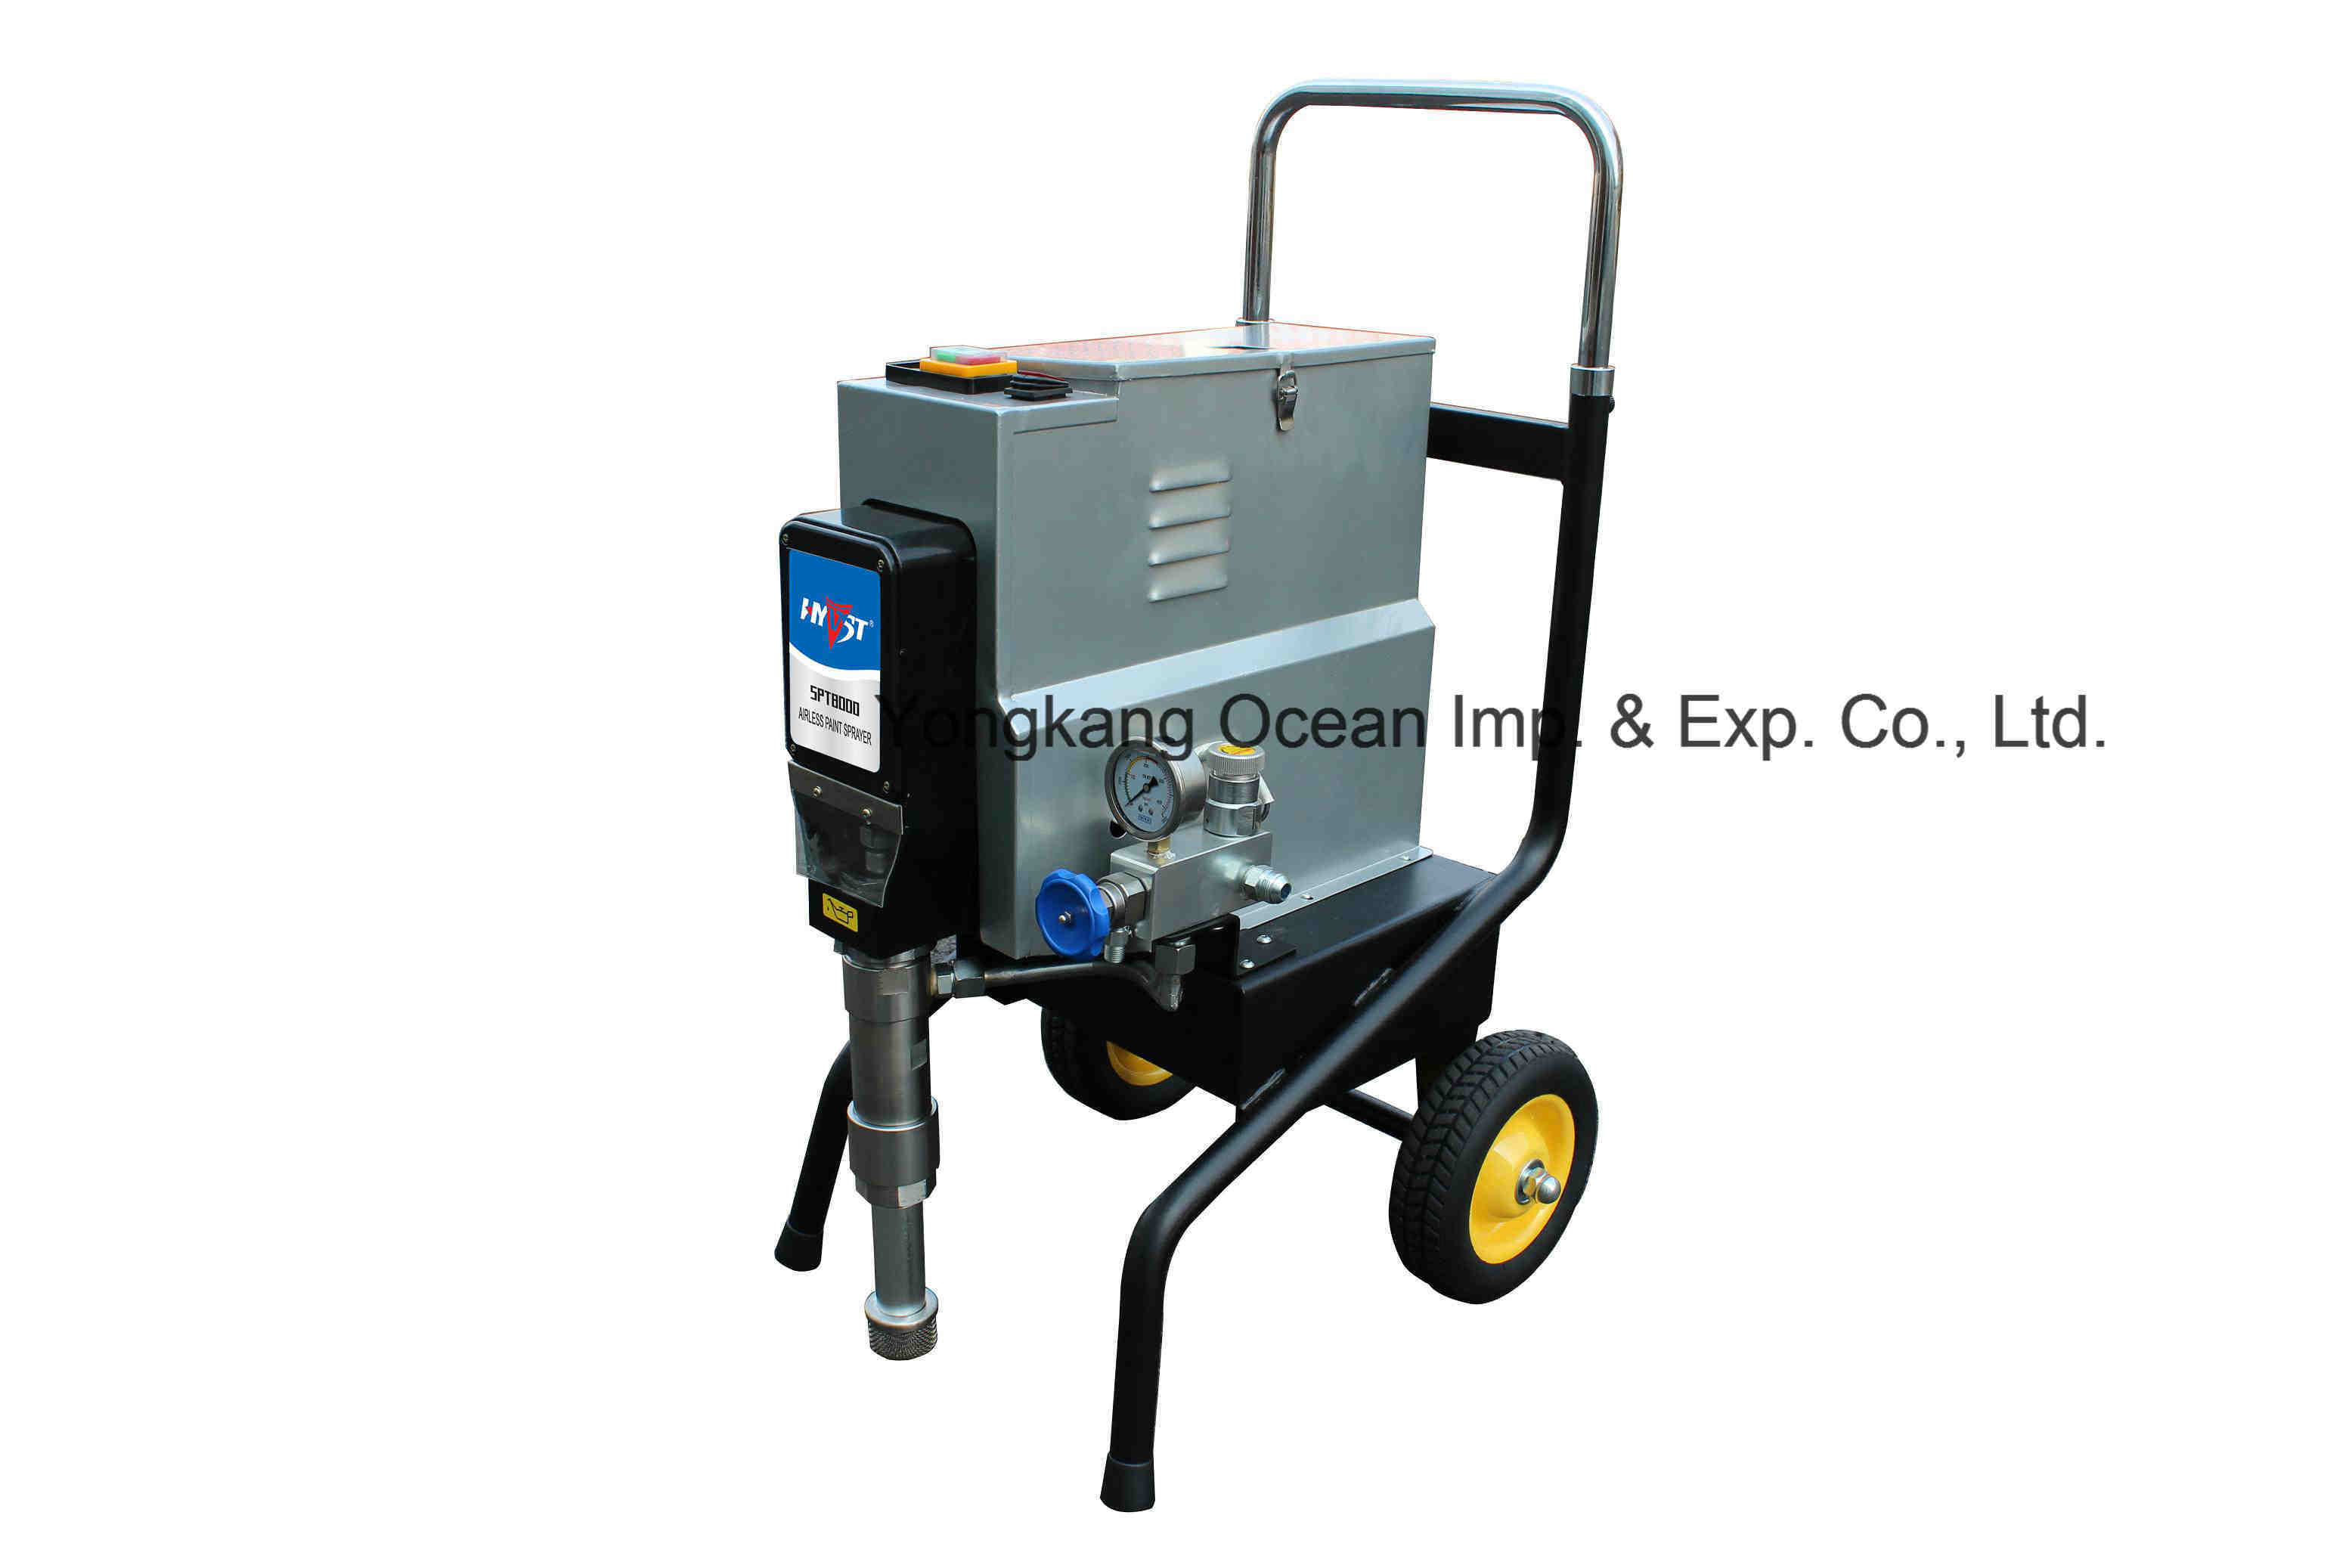 Hyvst High Pressure Airless Paint Sprayer Spt8000